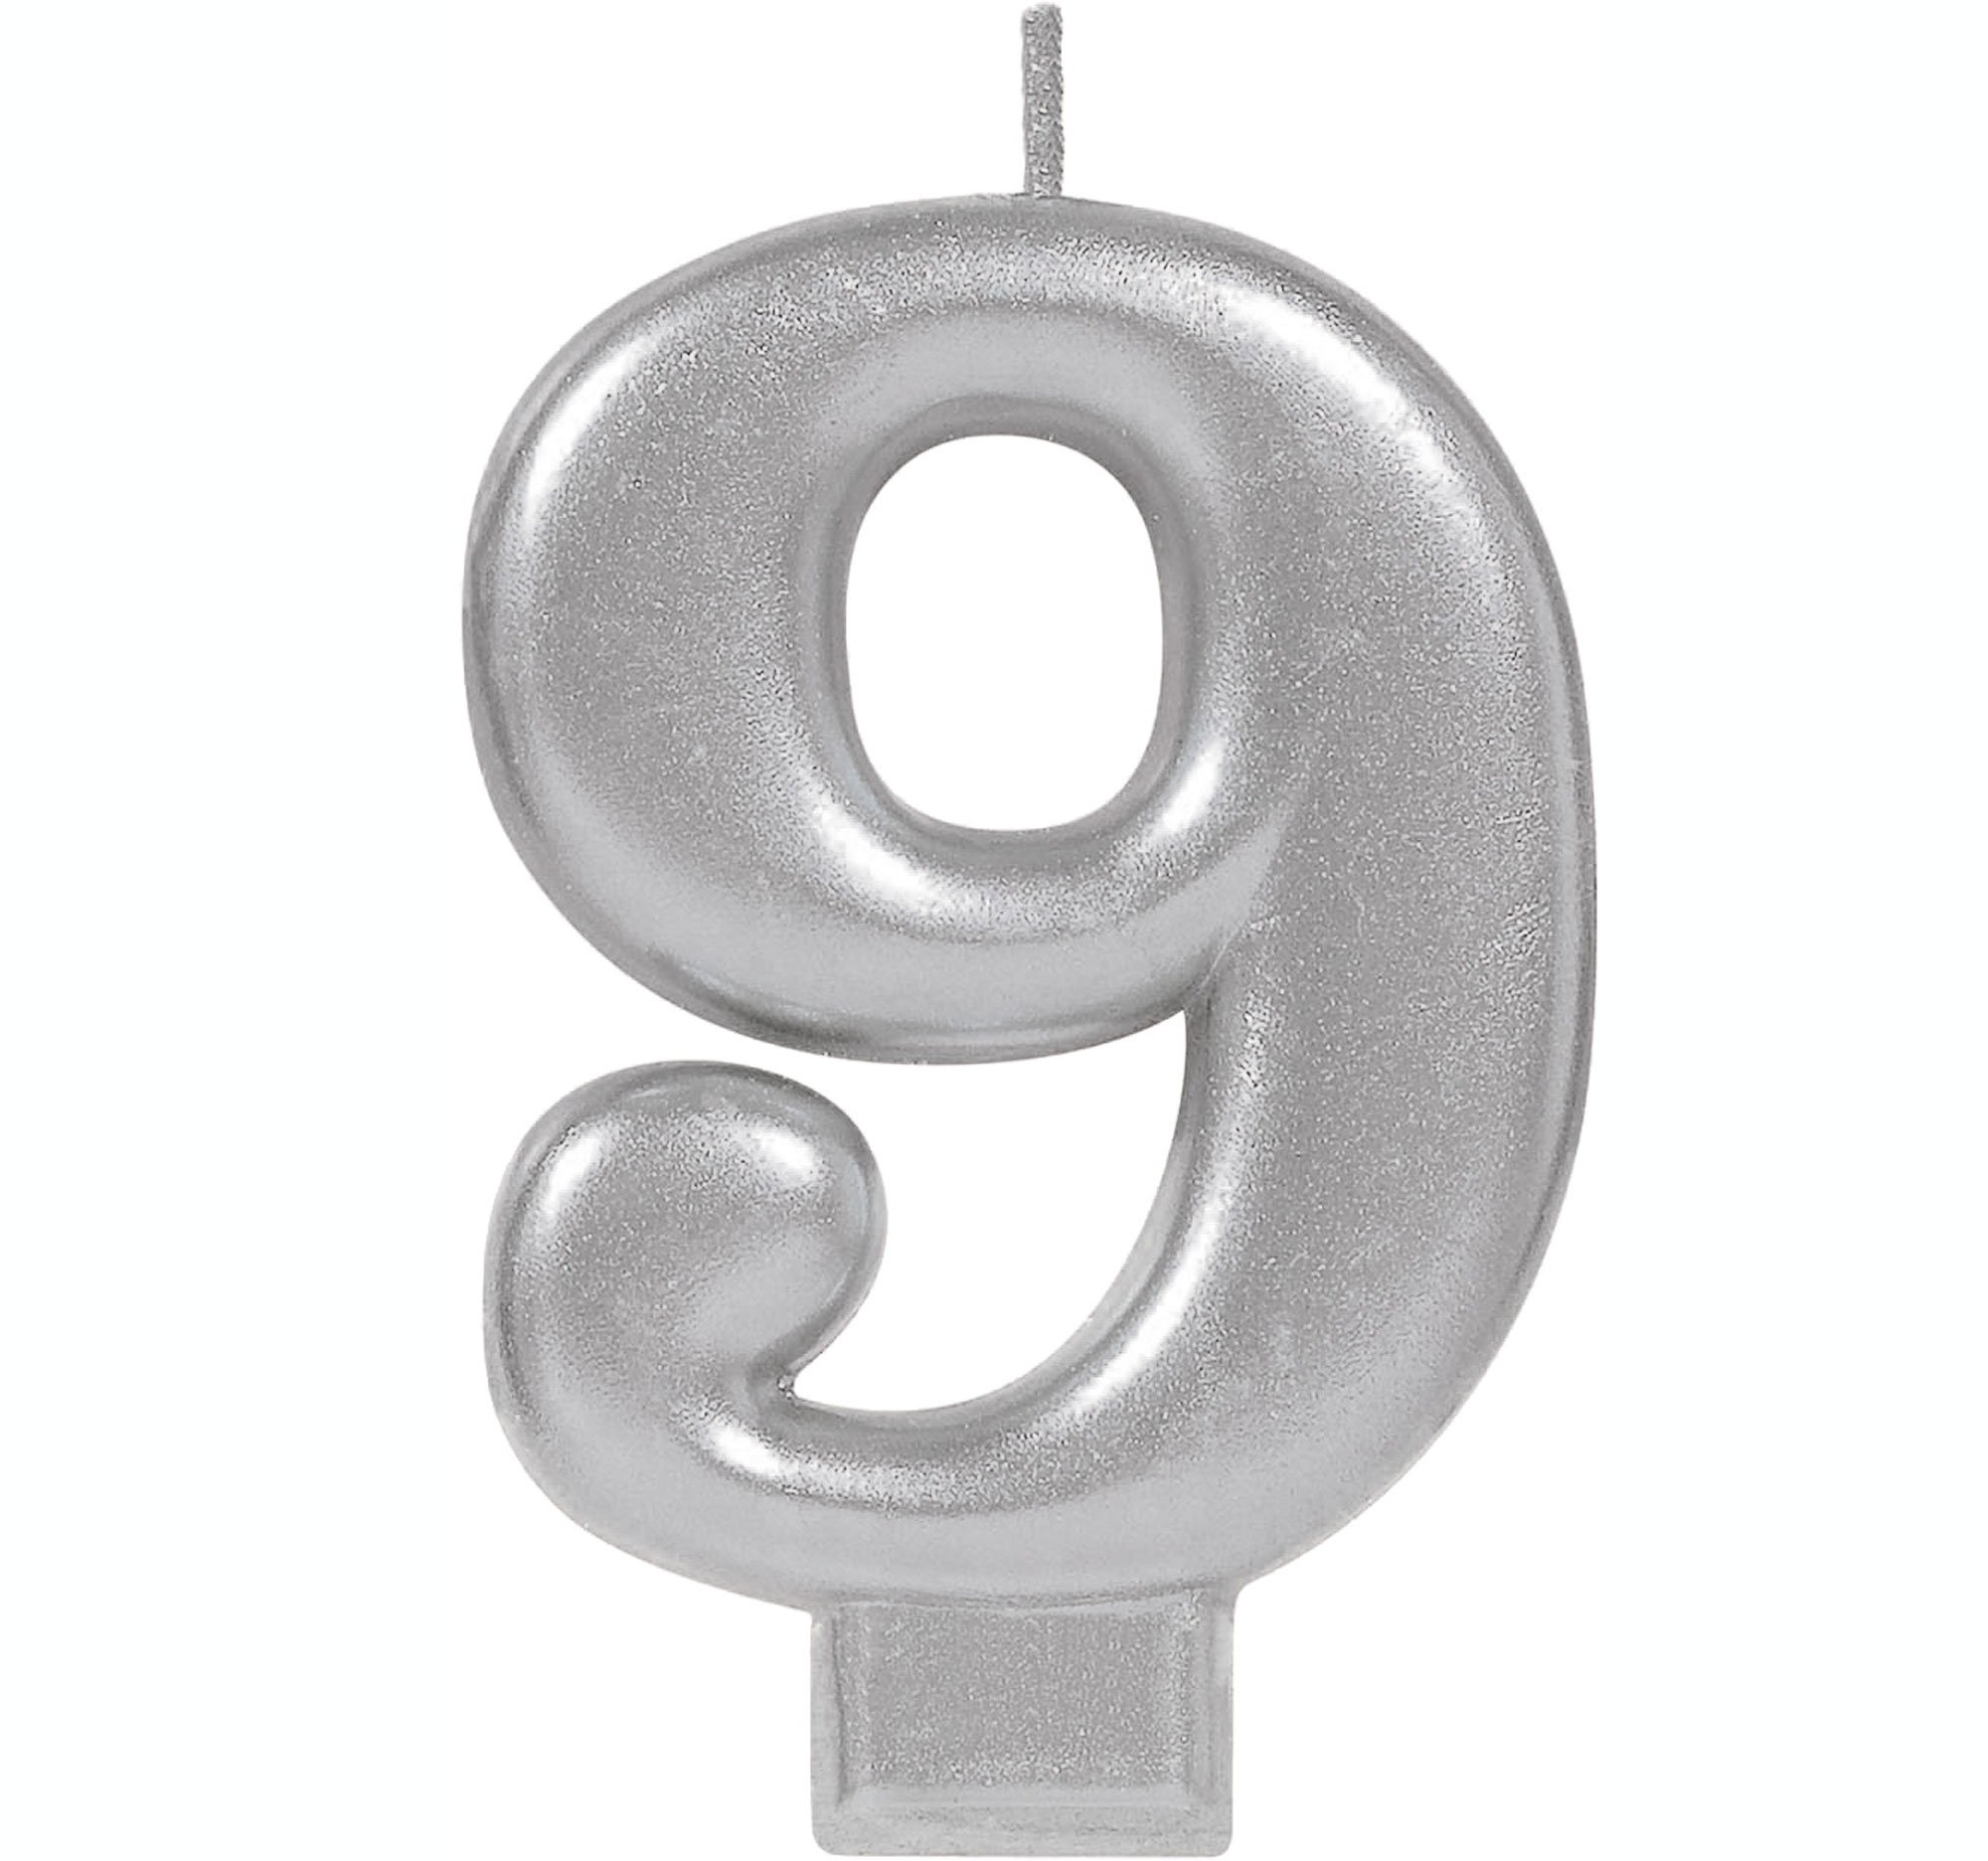 #9 Silver Metallic Numeral Moulded Candle